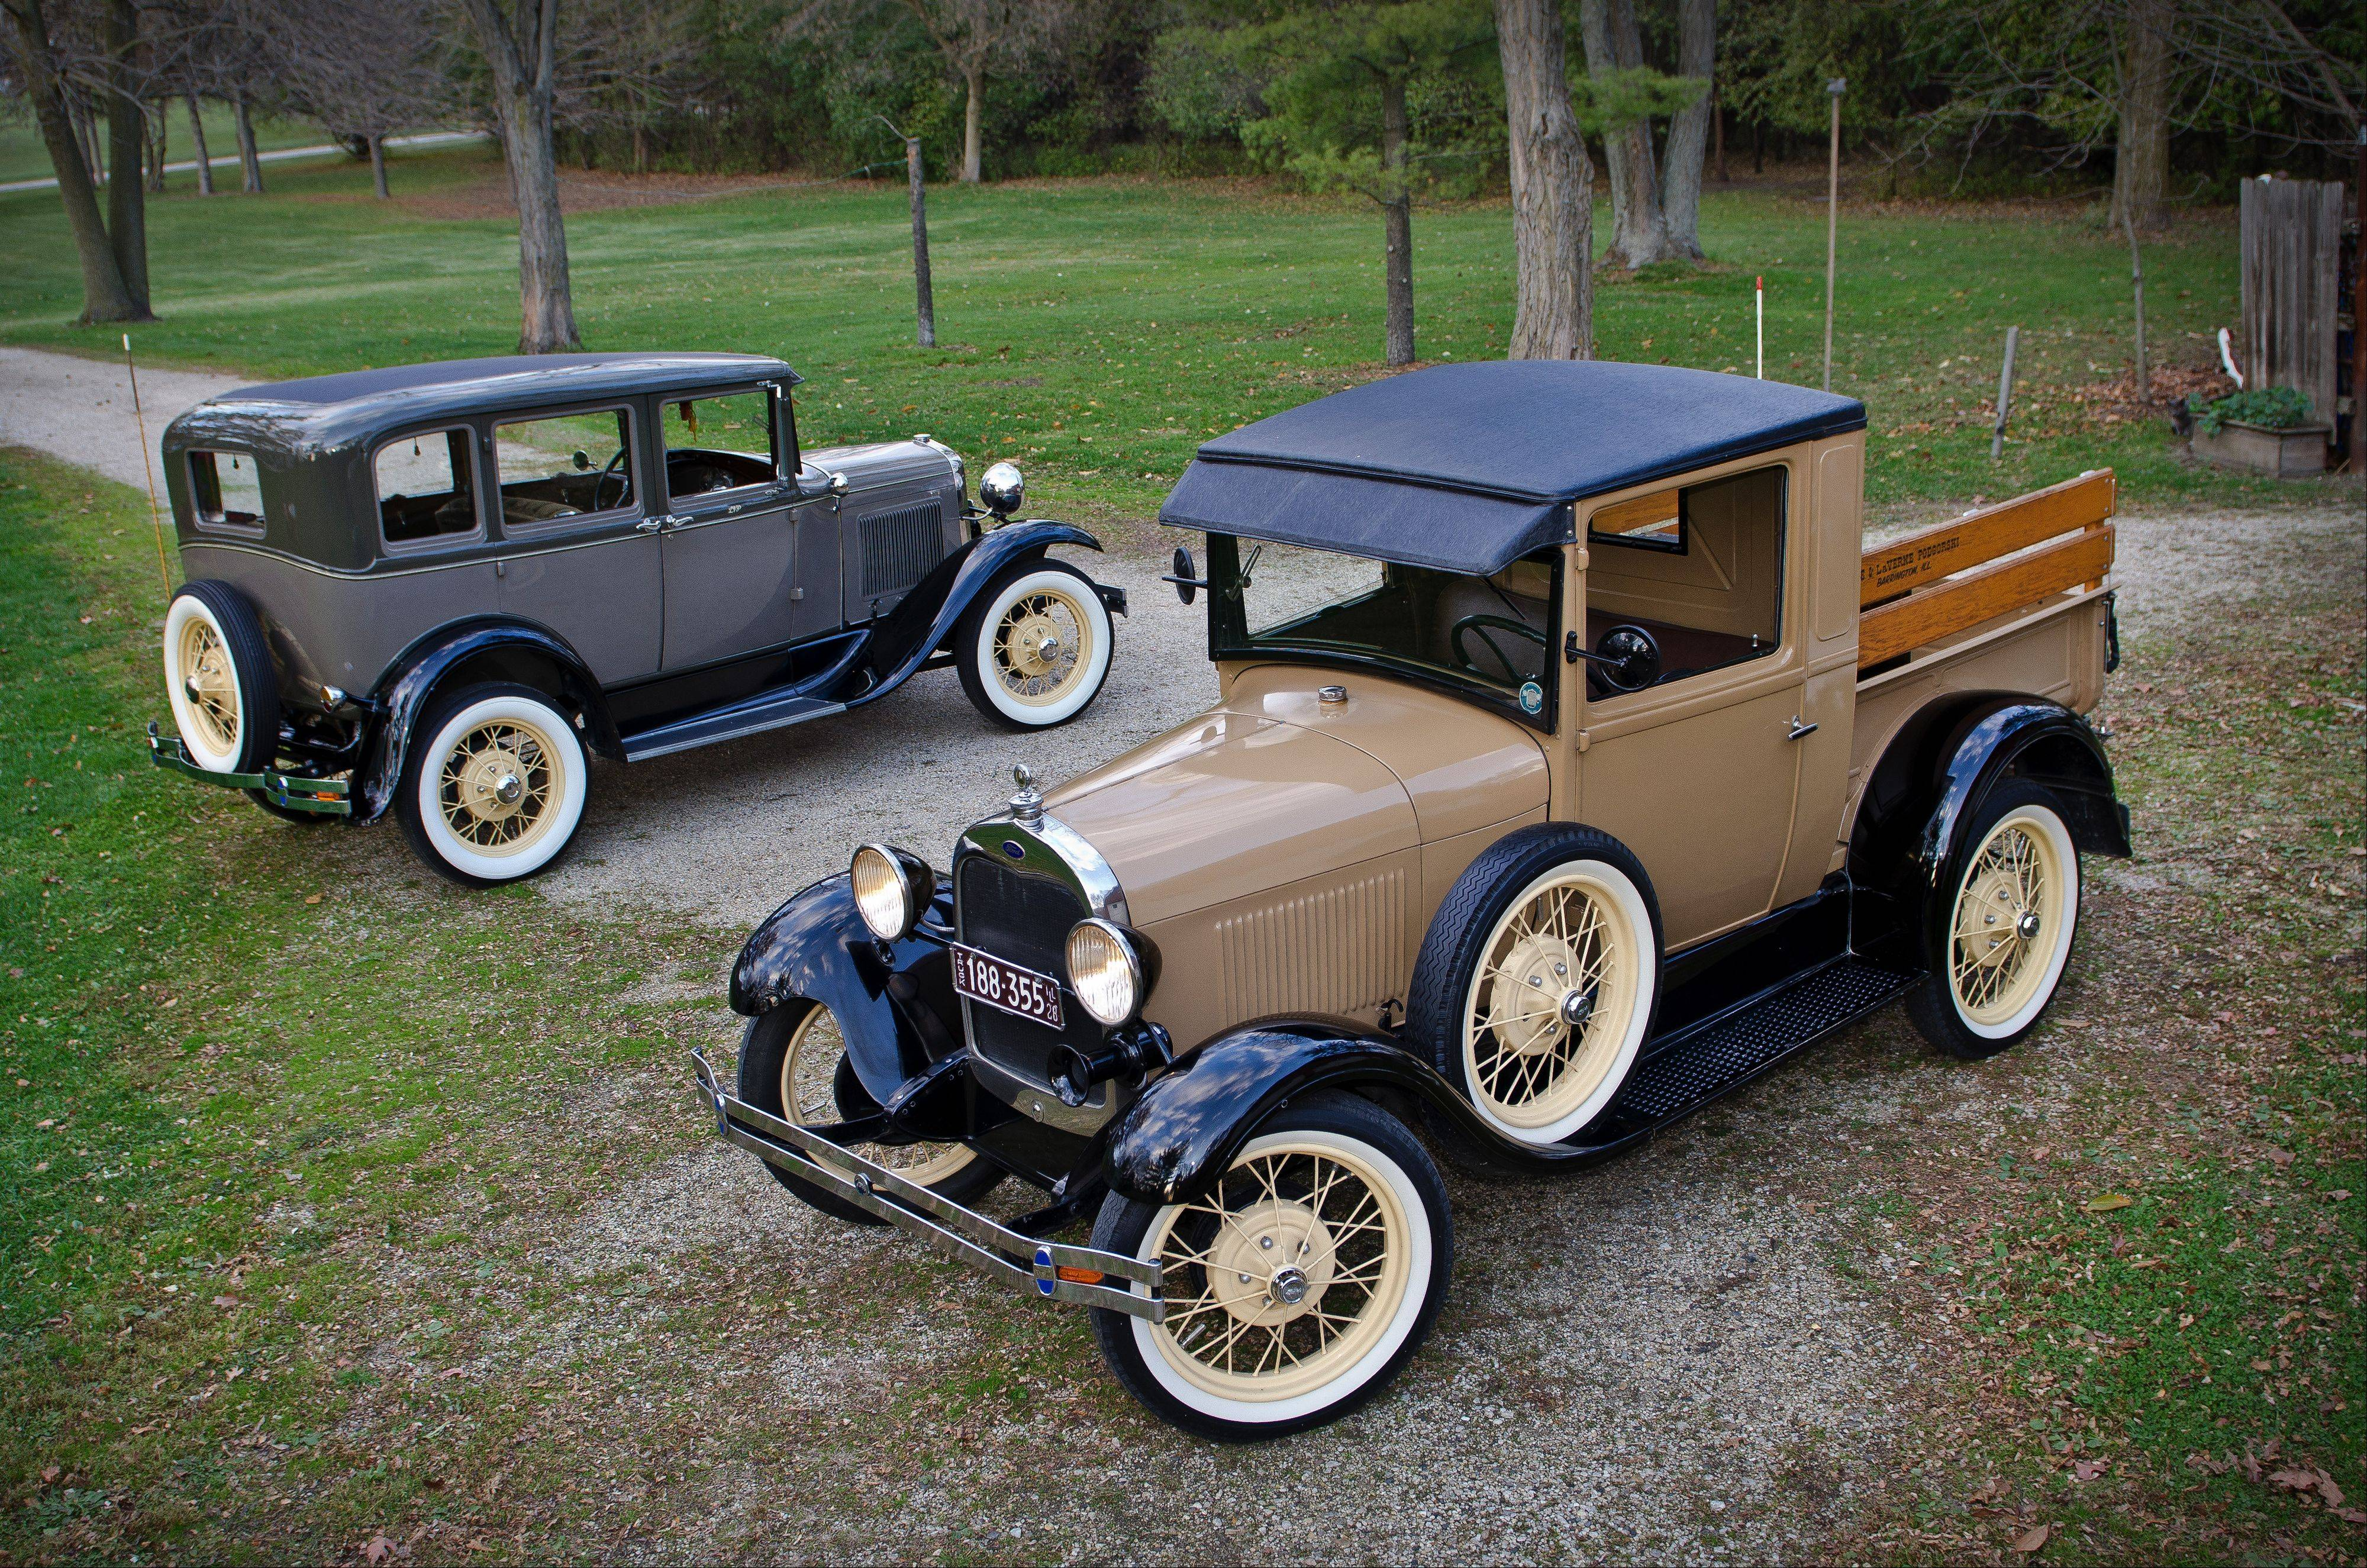 1928 Ford closed cab pickup and 1930 Ford Town Sedan Fodor with Briggs body.